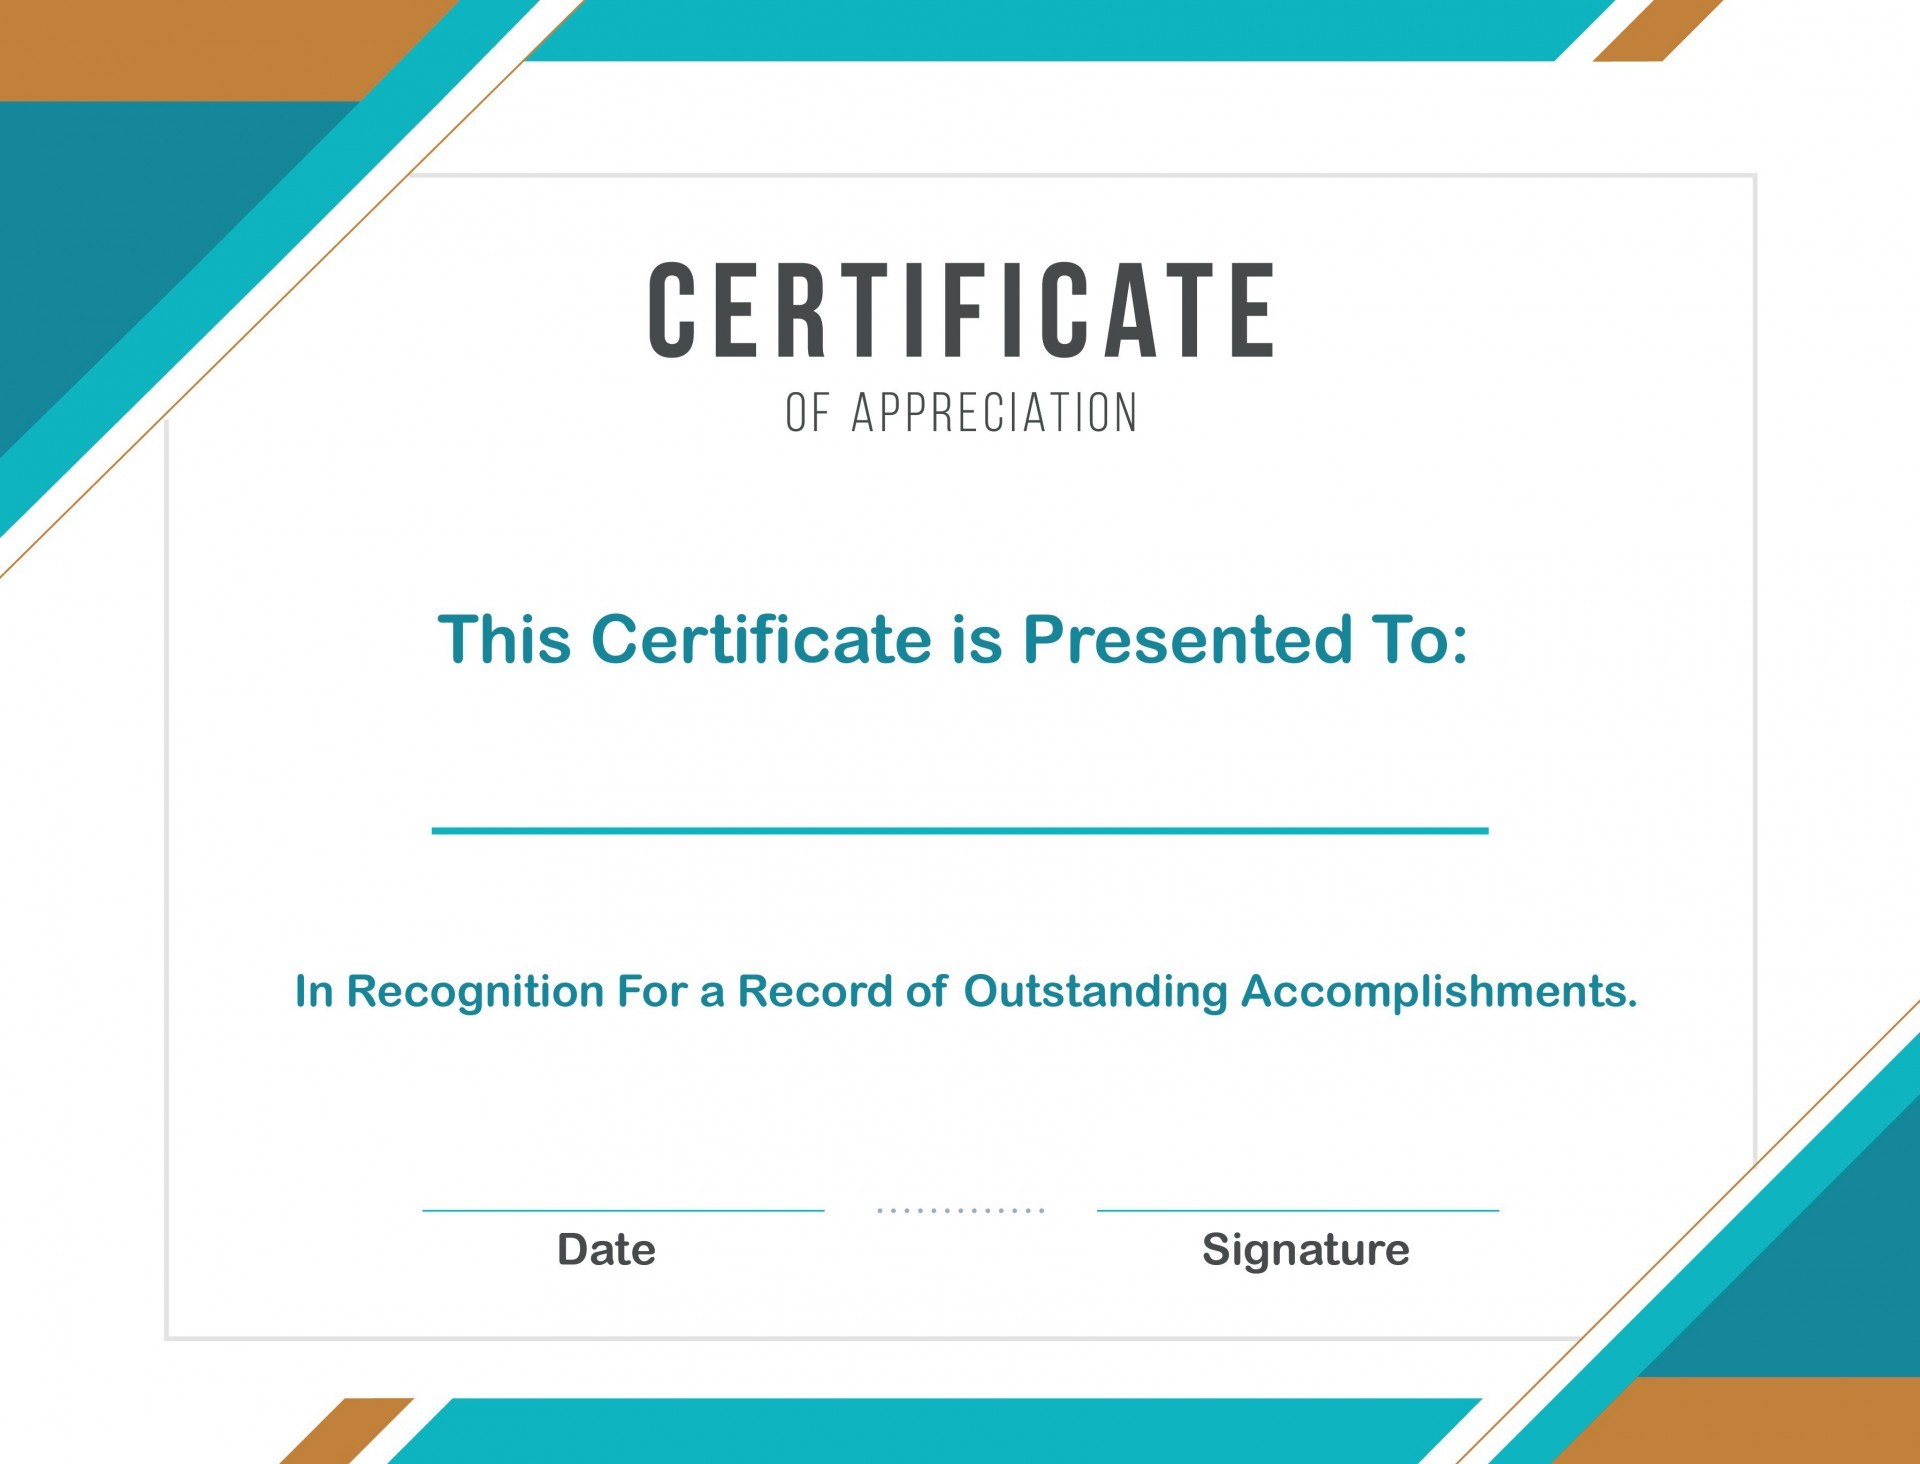 002 Exceptional Free Certificate Template Word Photo  Blank For Microsoft Award Border Download1920